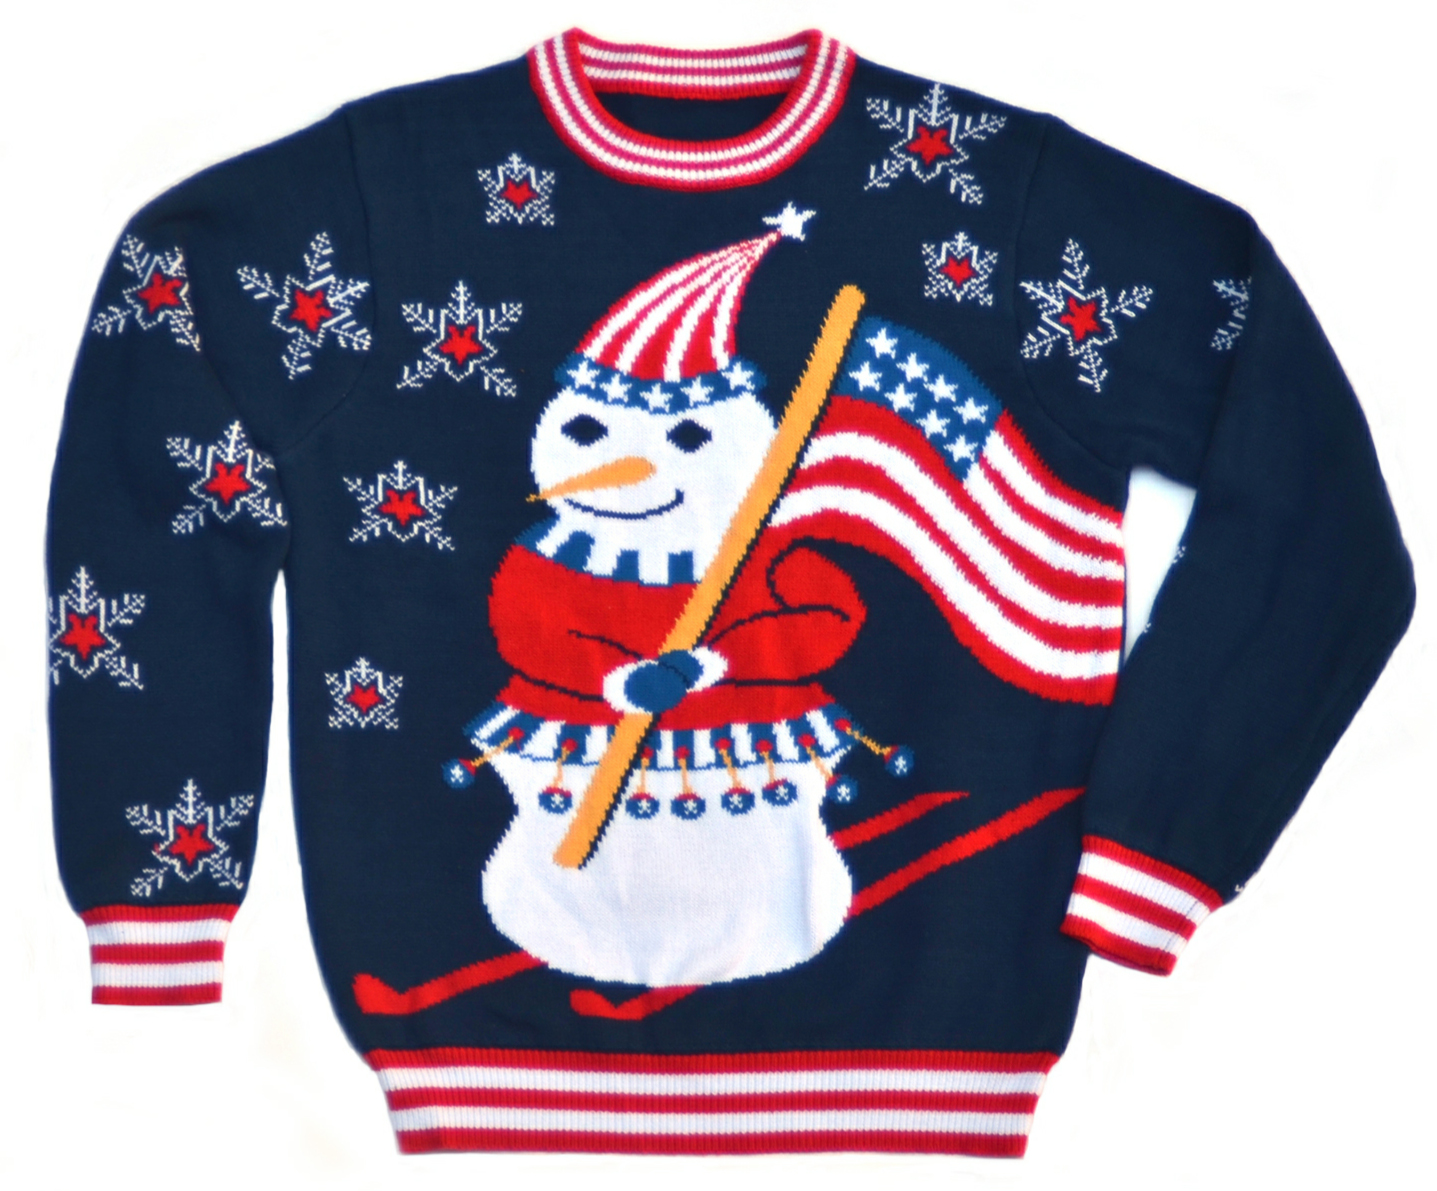 My Ugly Christmas Sweater Thanks Military Personnel by Donating ...